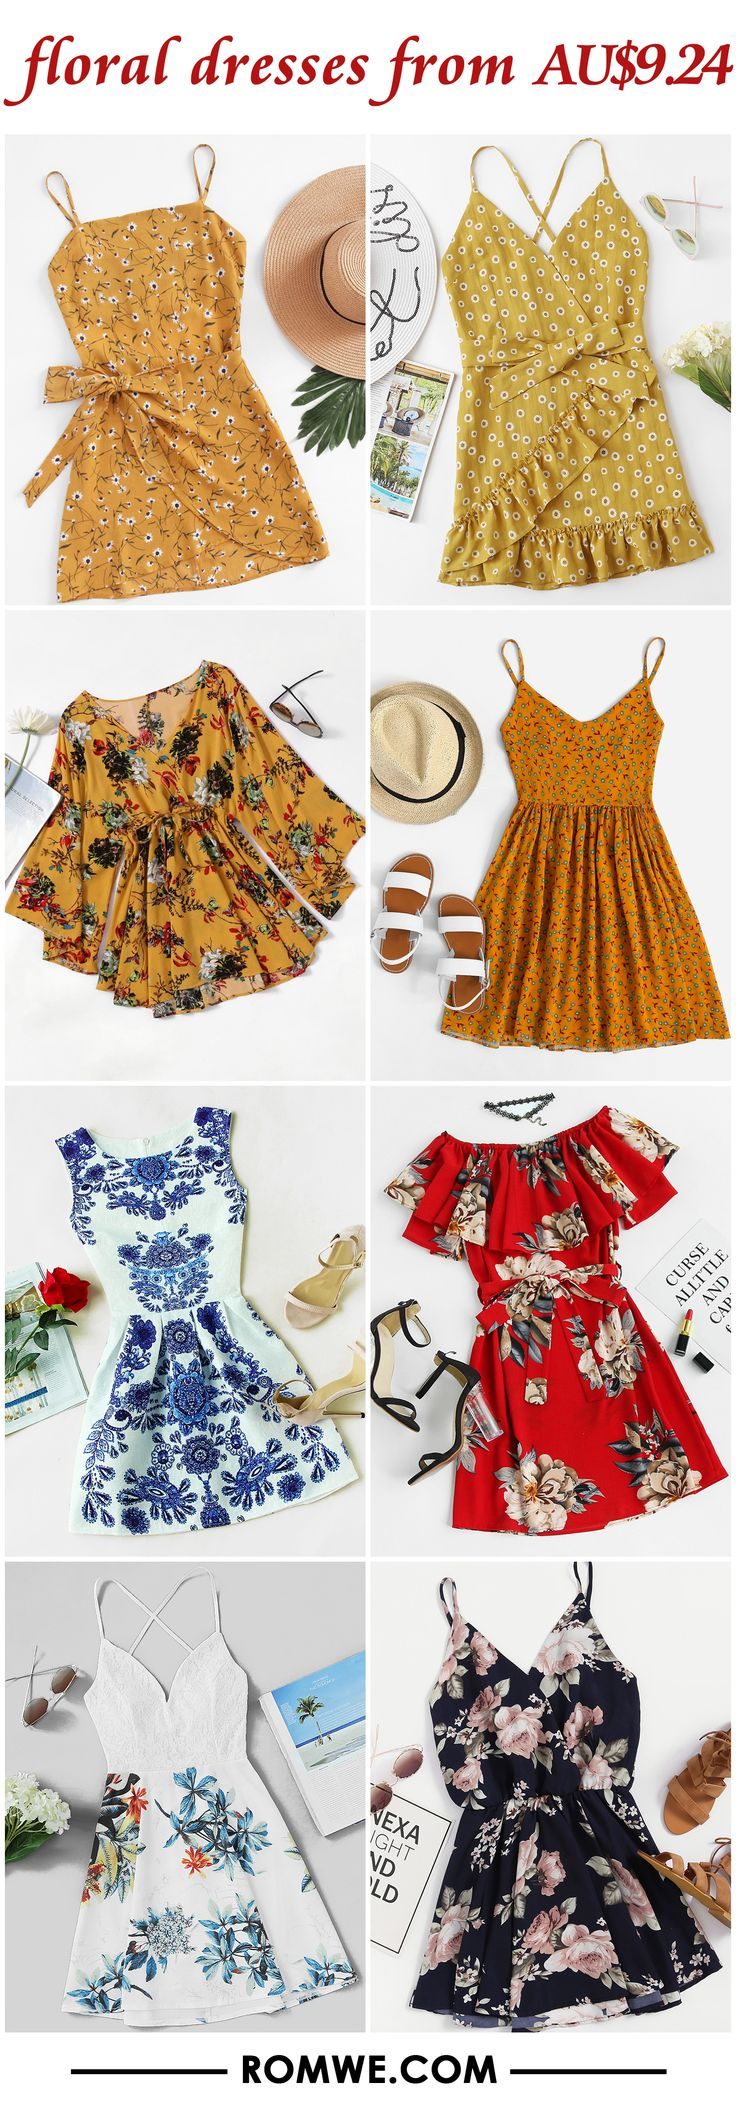 floral dresses from AU$9.24